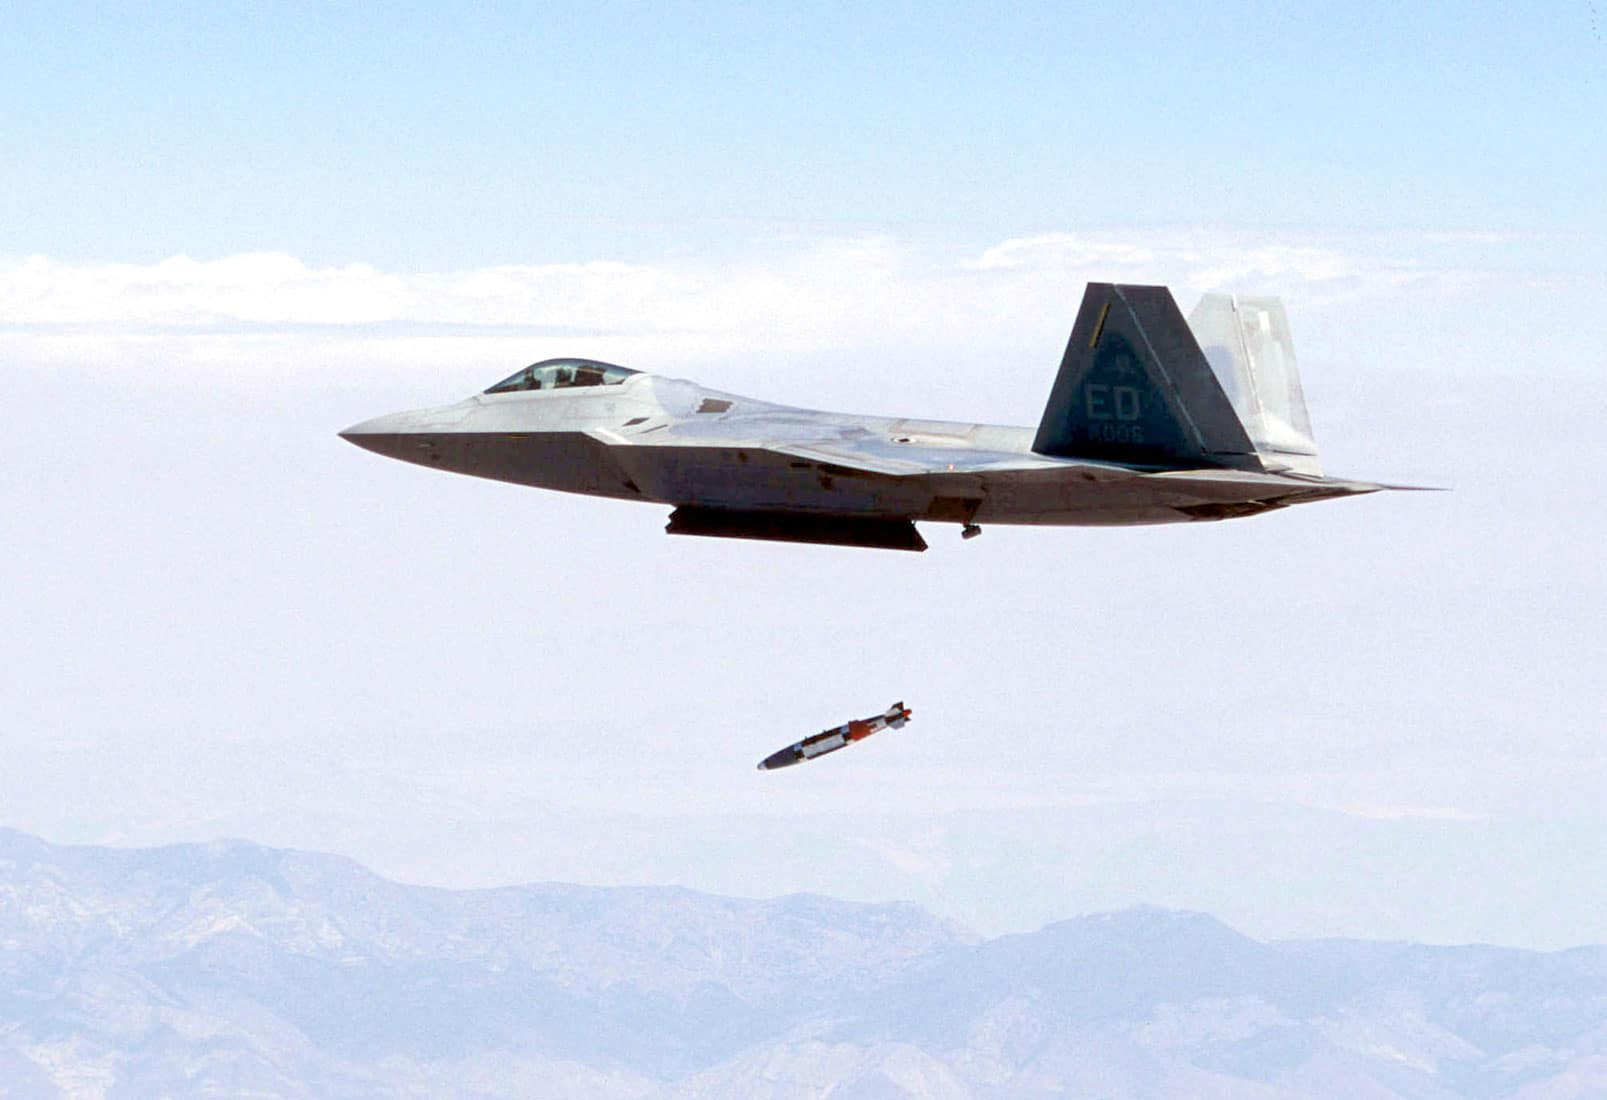 An F 22 Raptor, flown by Maj. John Teichert, releases a guided bomb unit-32 1,000-pound joint direct attack munitions at supersonic speed for the first time near California's Panamint Mountain range.